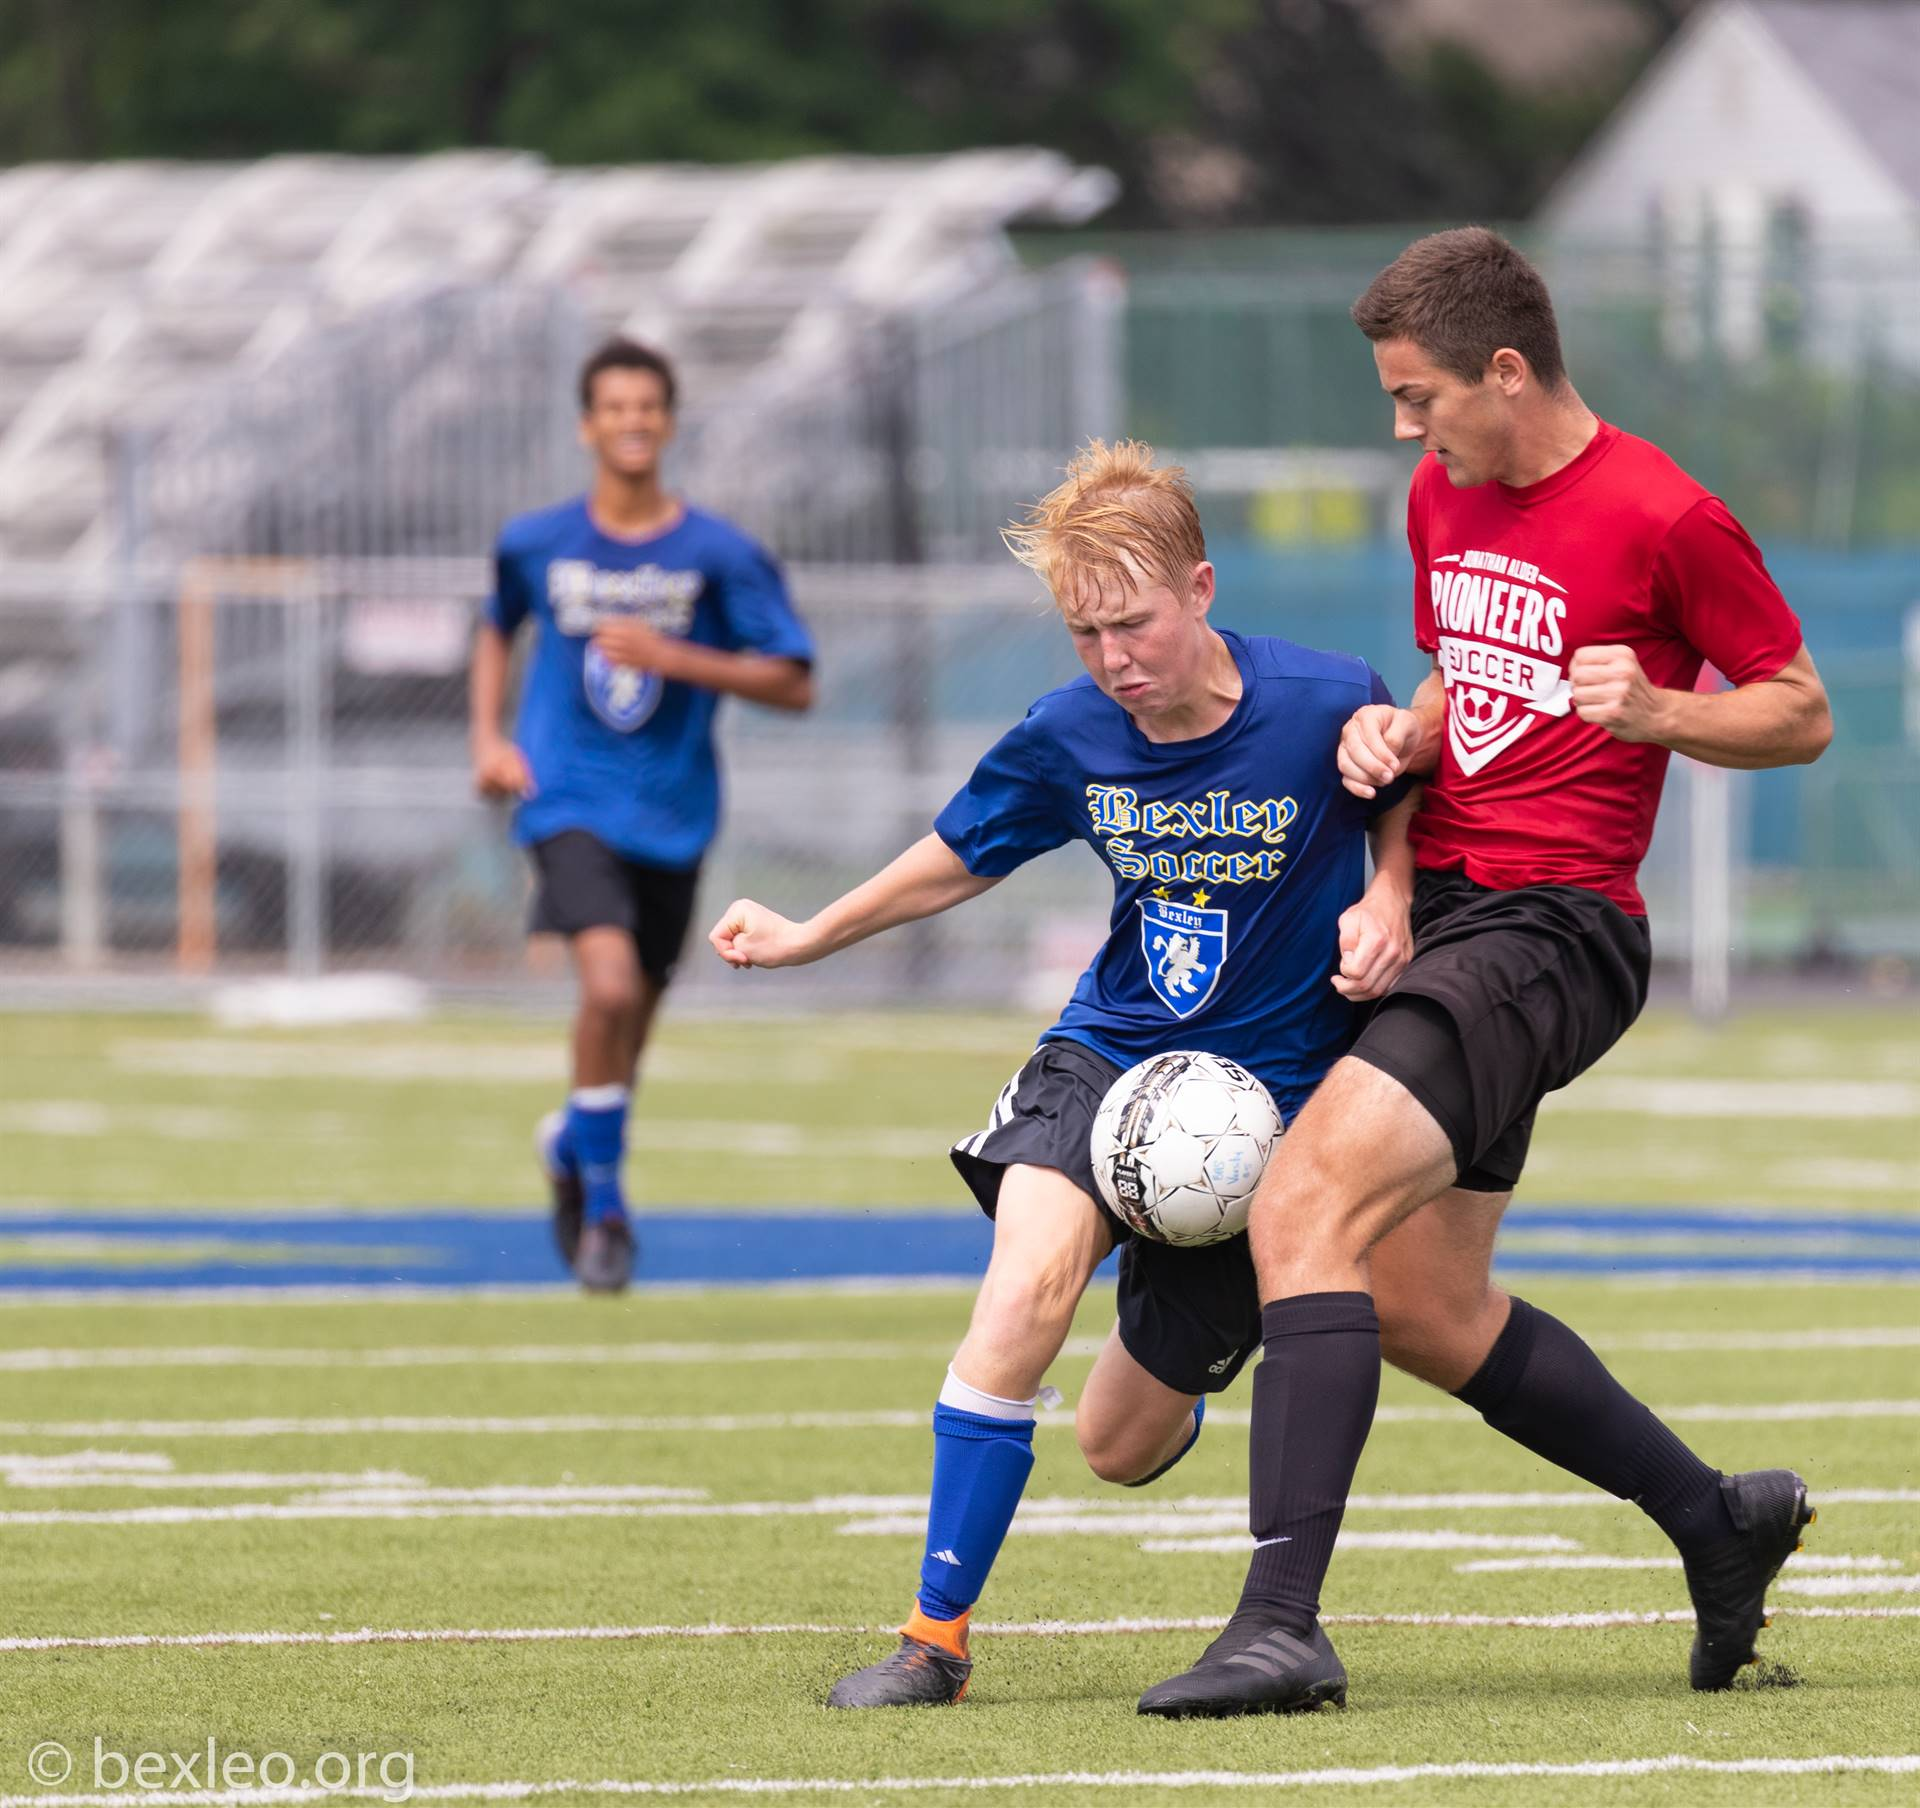 Soccer player Ford Cowan wins possession of the ball